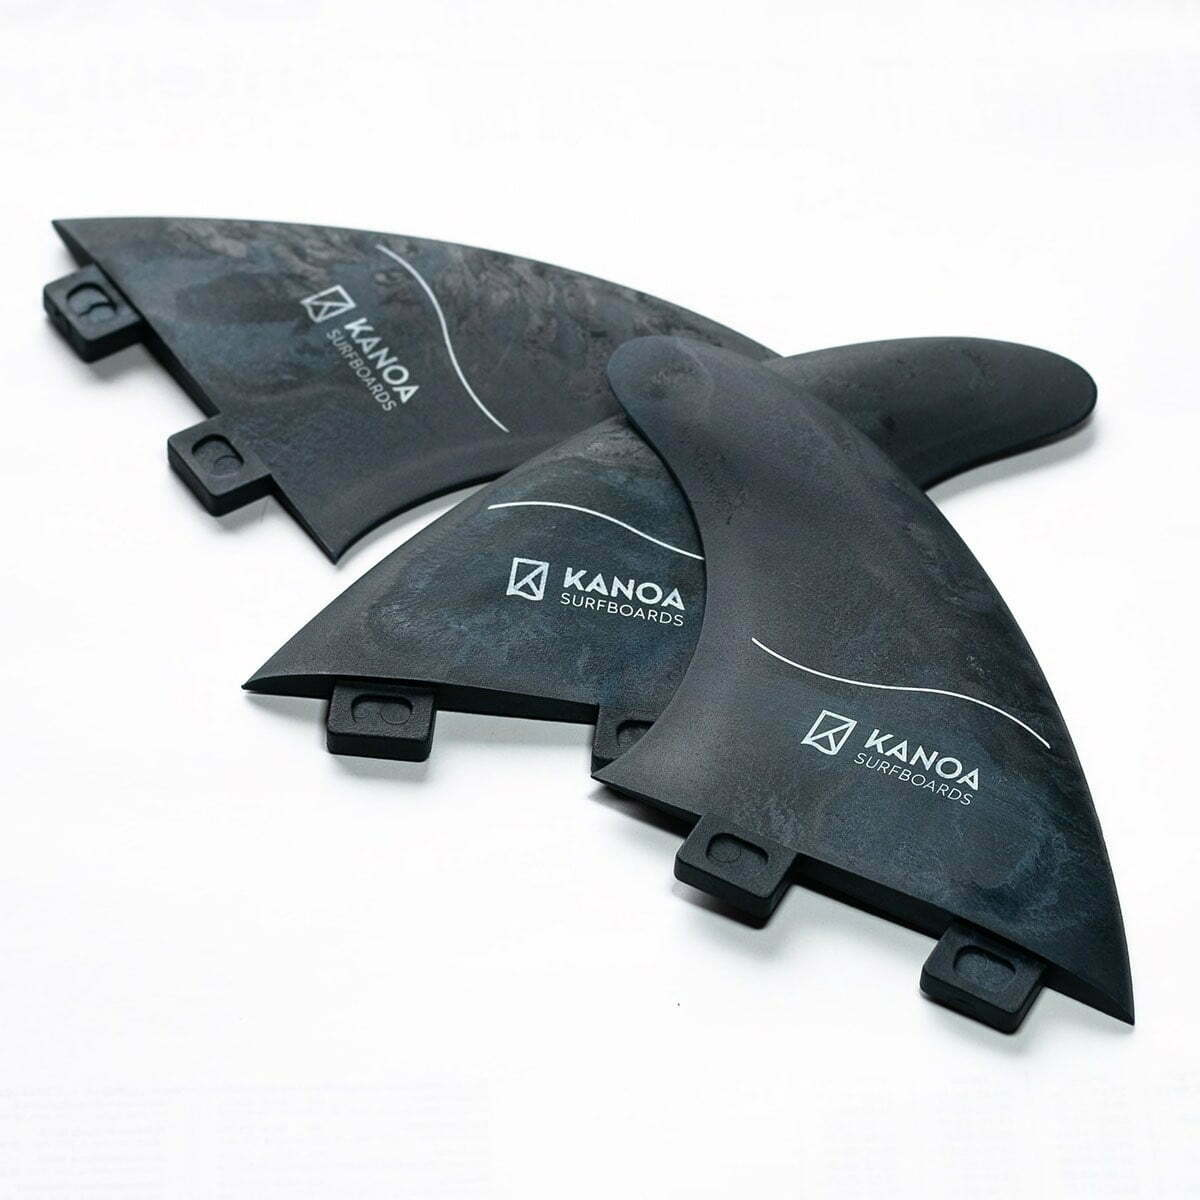 KANOA-recycled-rebel-fins-thrusterset-2